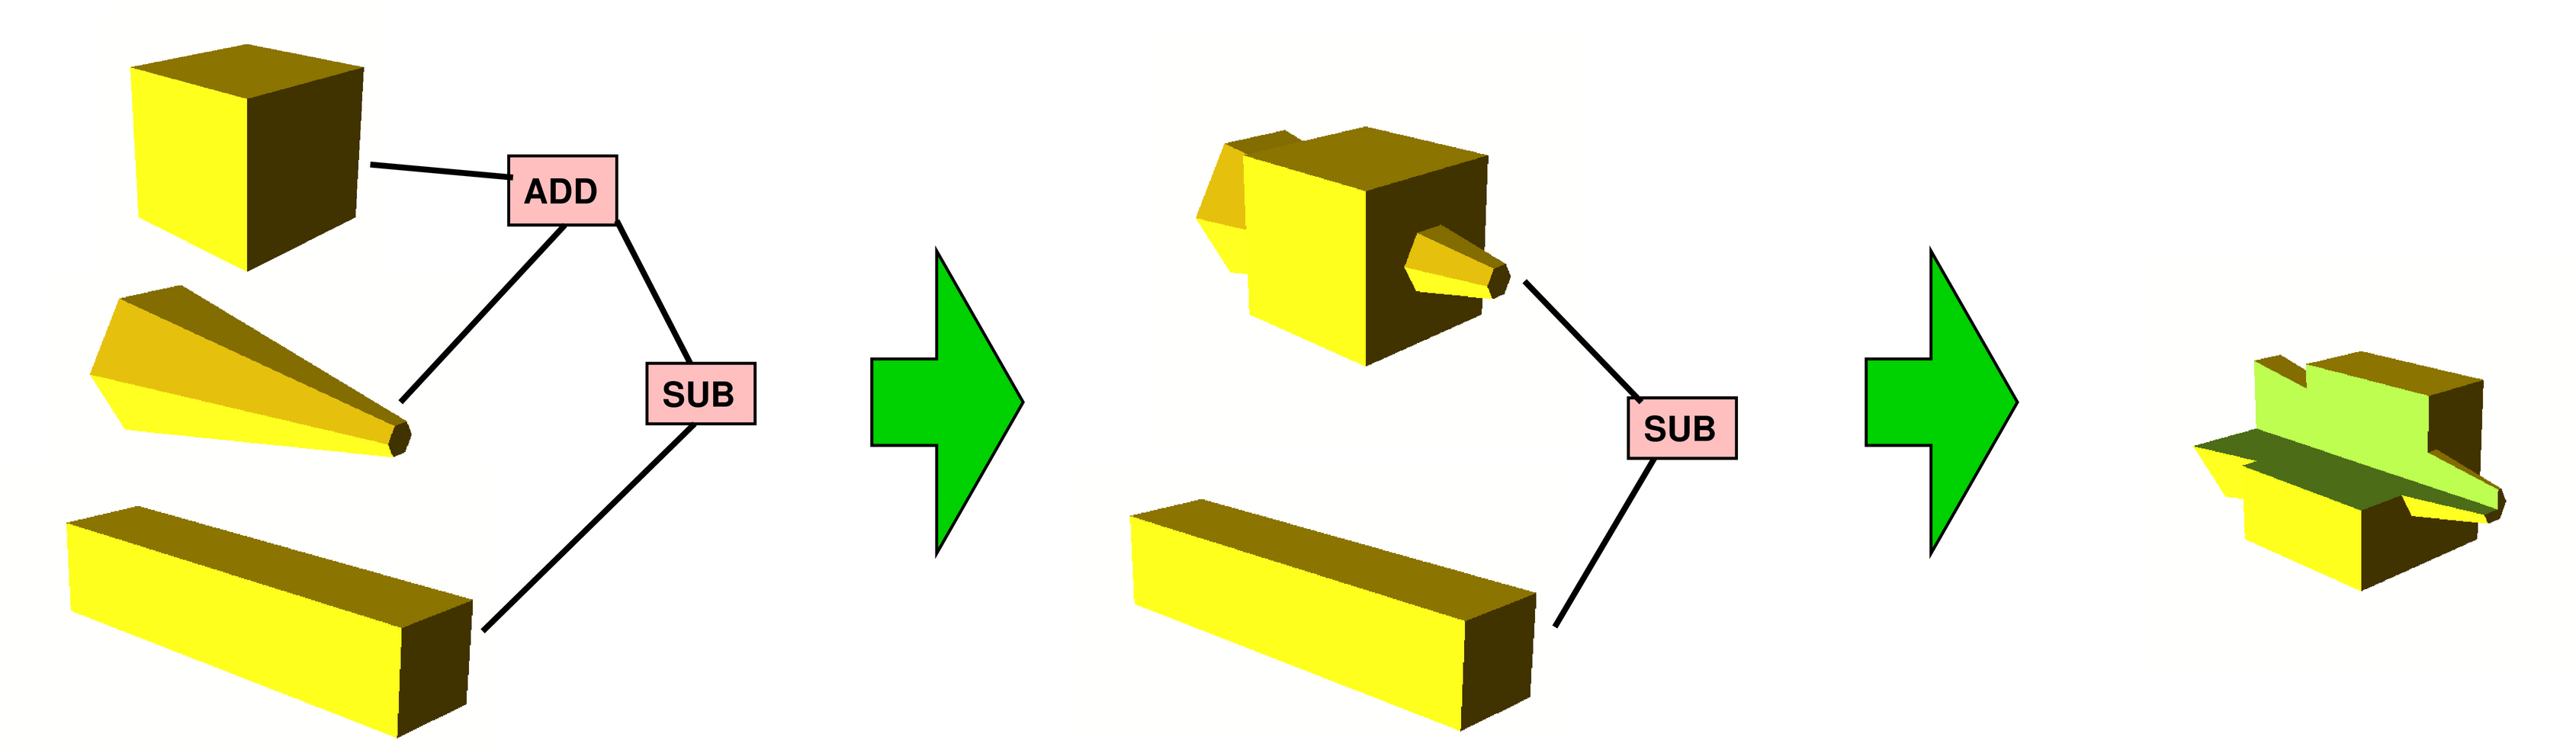 Theiling Online: Tinkering: 3D Printing Simplified To 2D